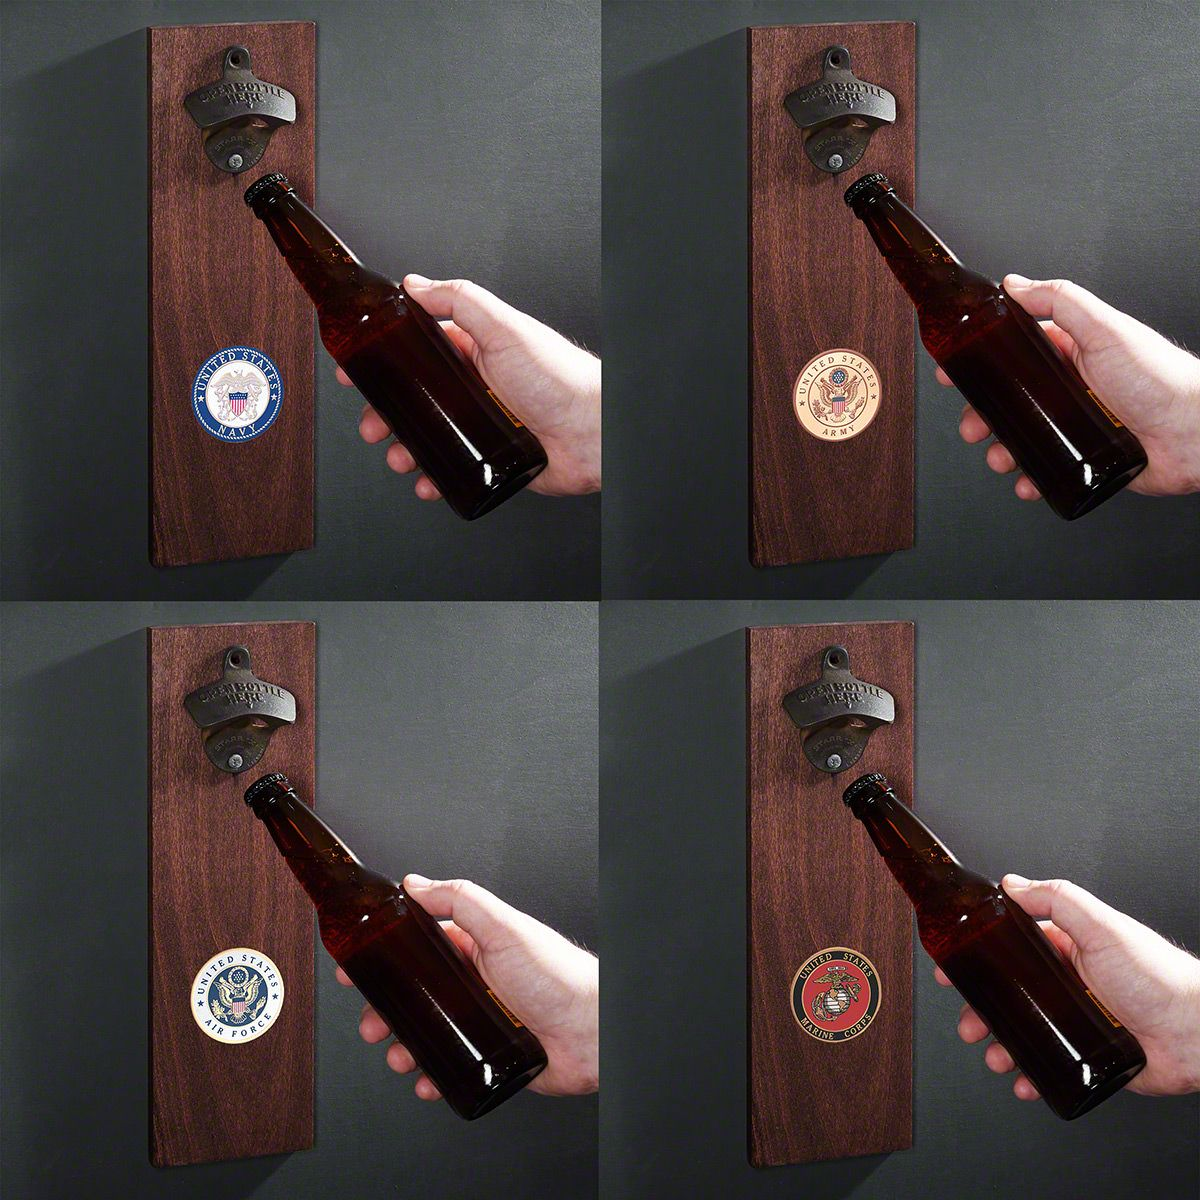 Military Crest Wall-Mounted Bottle Opener Gift for Military - 4 Styles